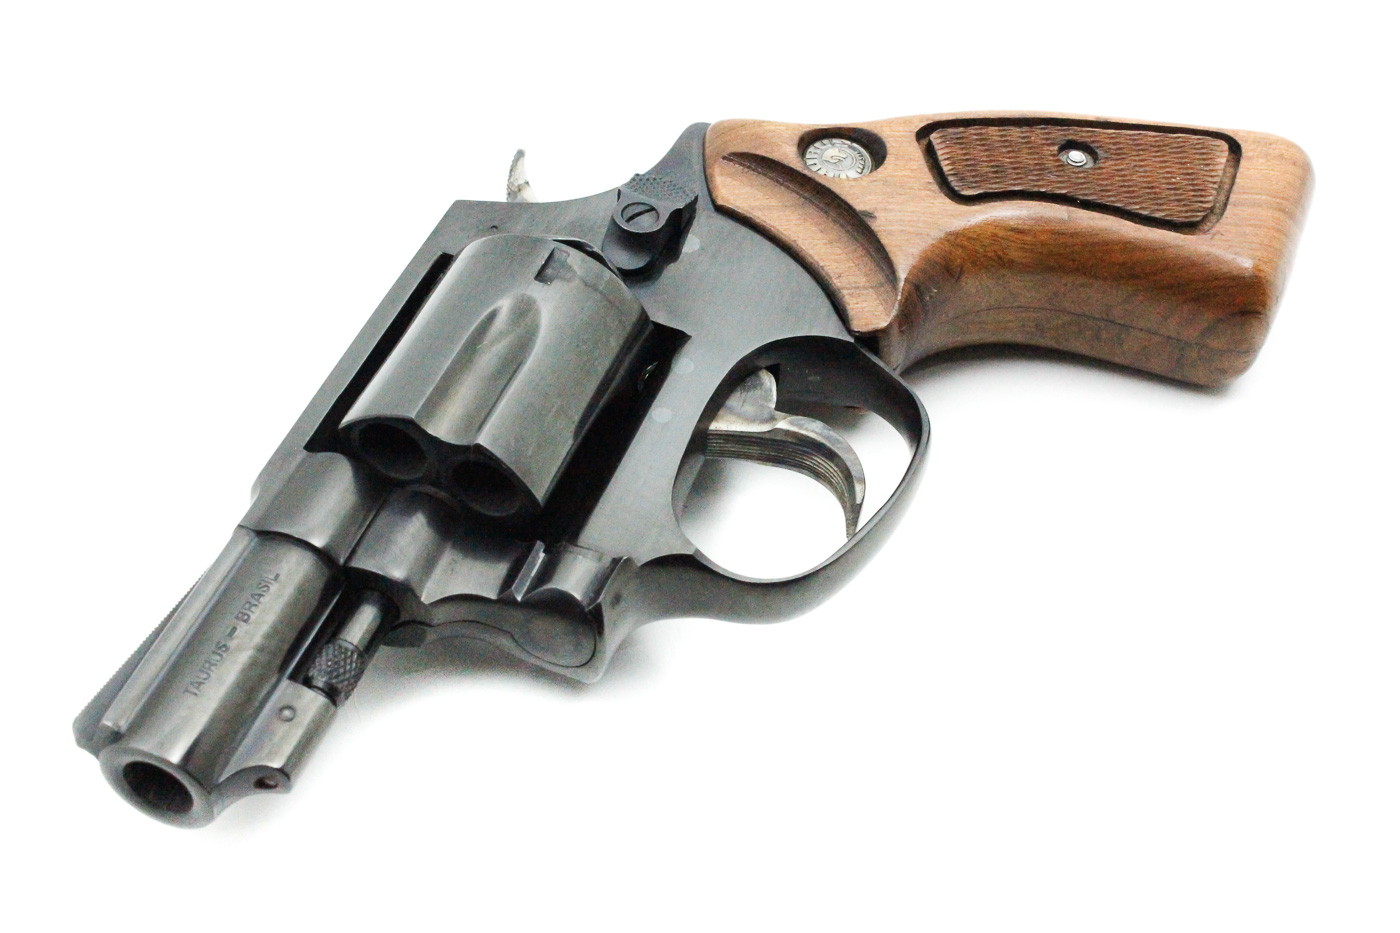 Taurus A85 Revolver .38 Special - Image 7